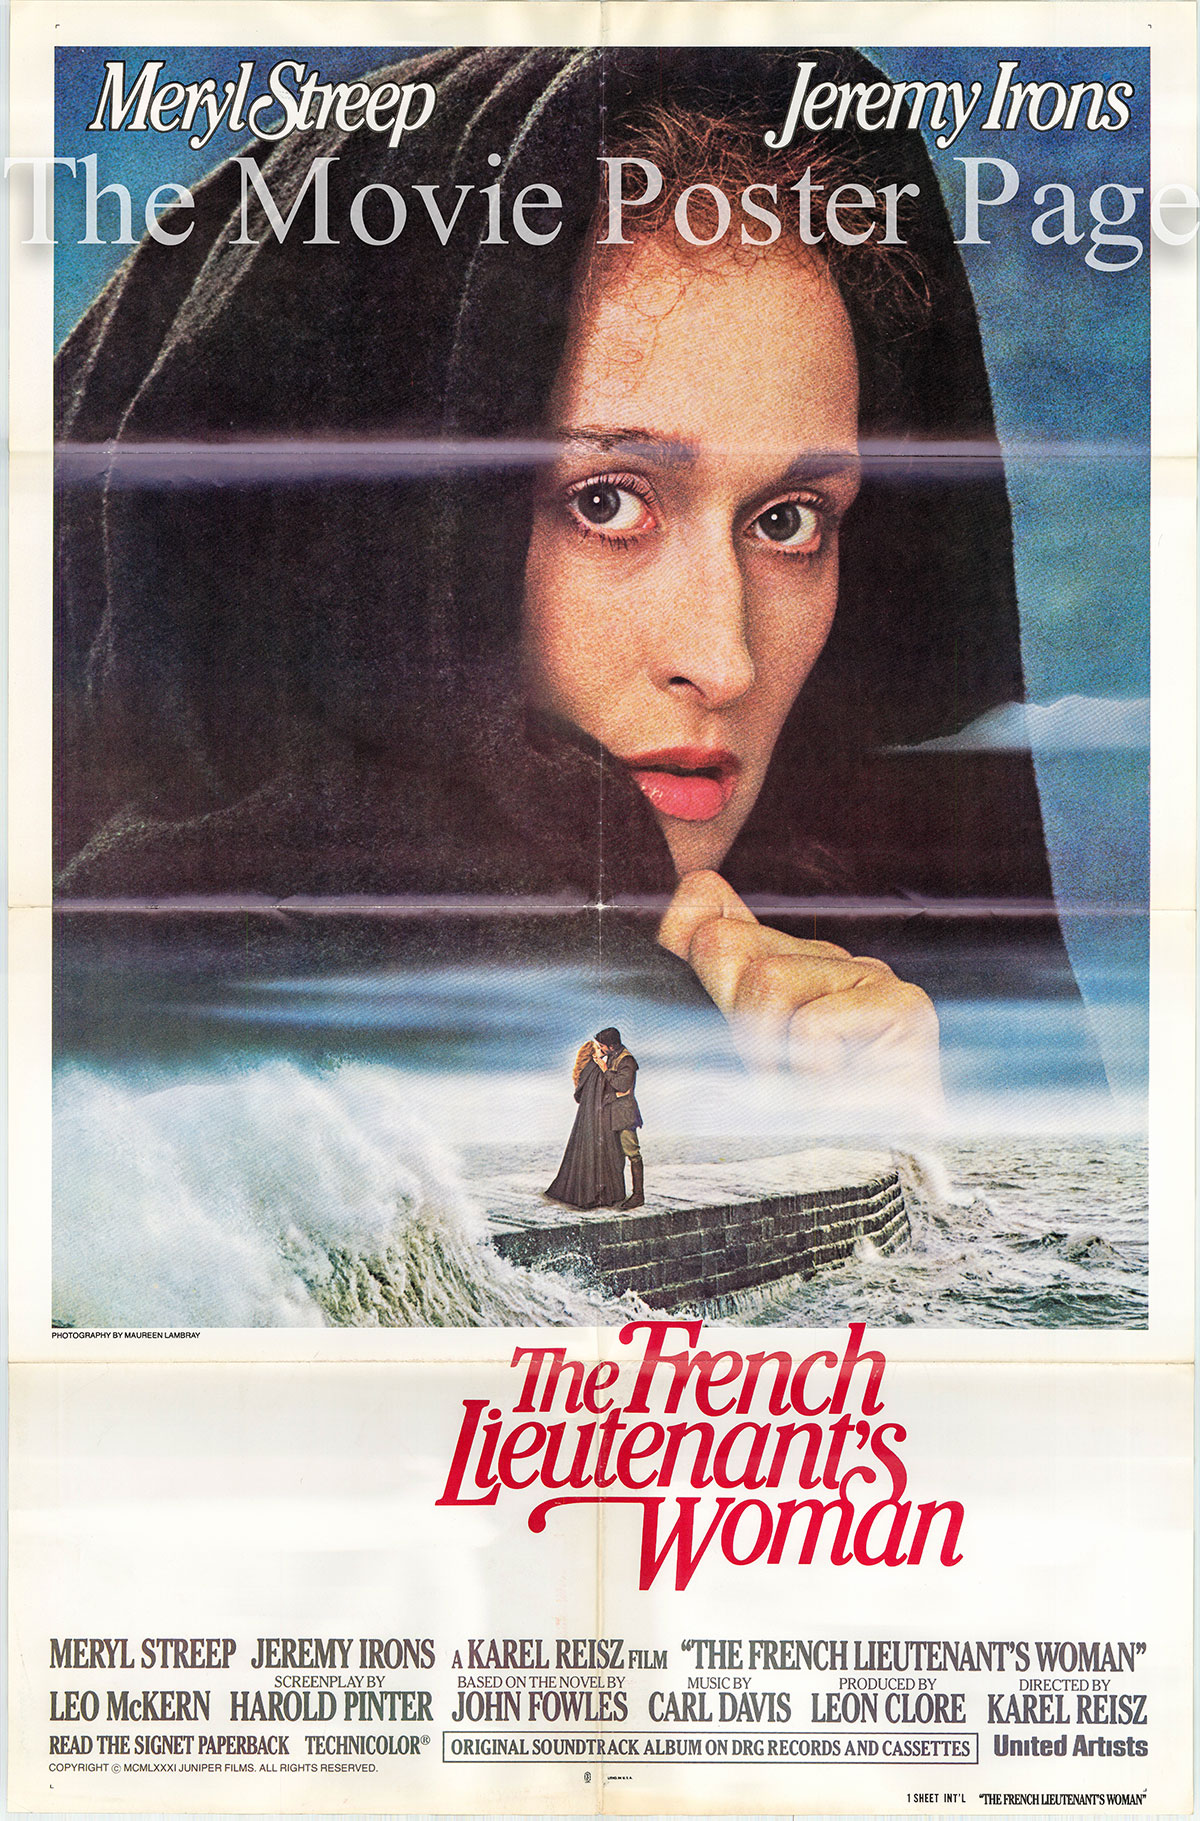 Pictured is a US one-sheet poster for the 1981 Karel Reiscz film The French Lieutenant's Woman starring Meryl Streep as Sarah and Anna.